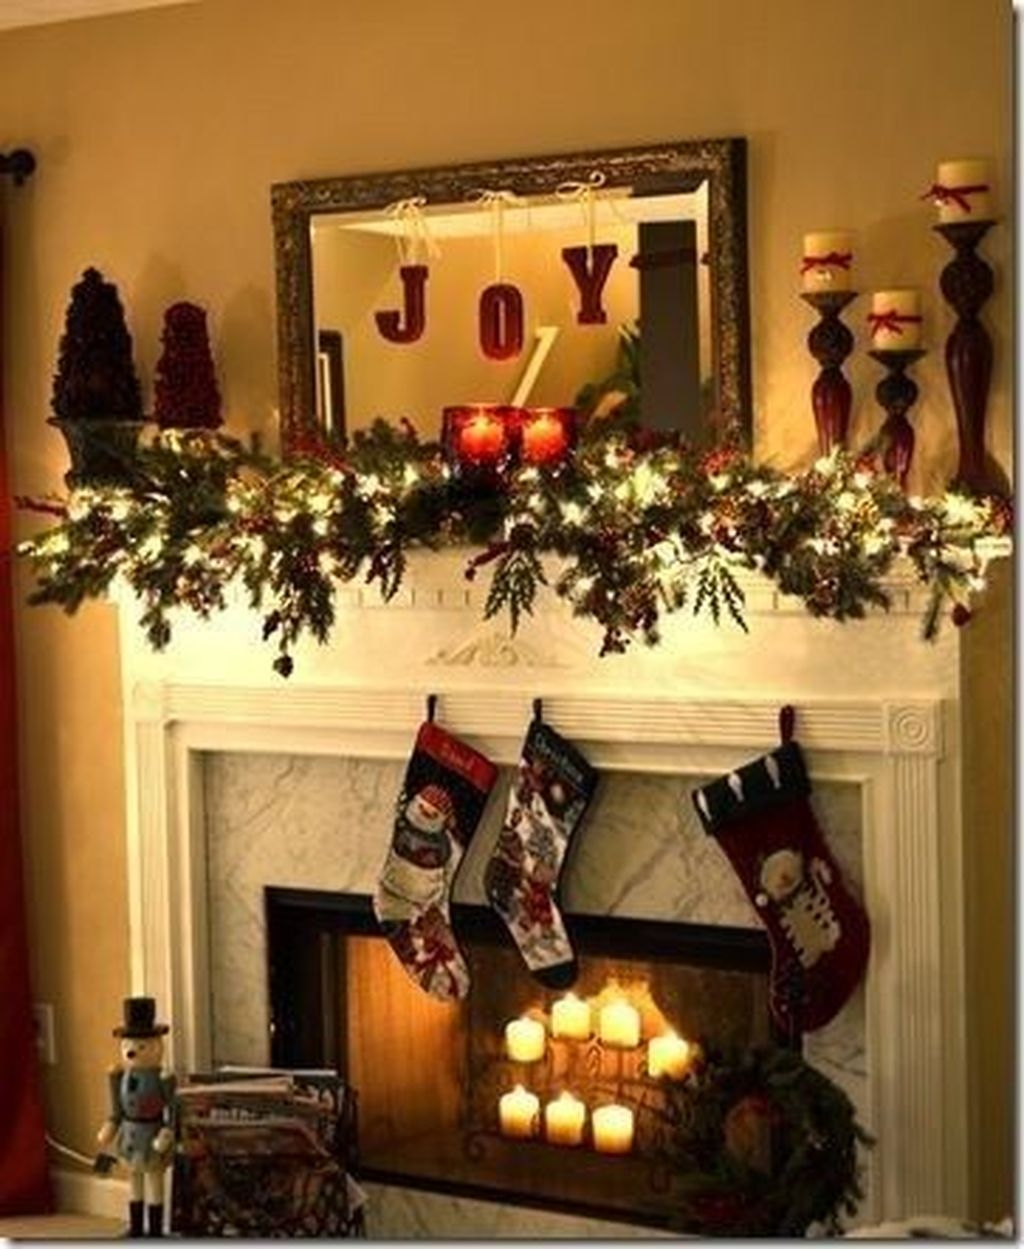 The Best Christmas Fireplace Decoration For Any Home Model 32